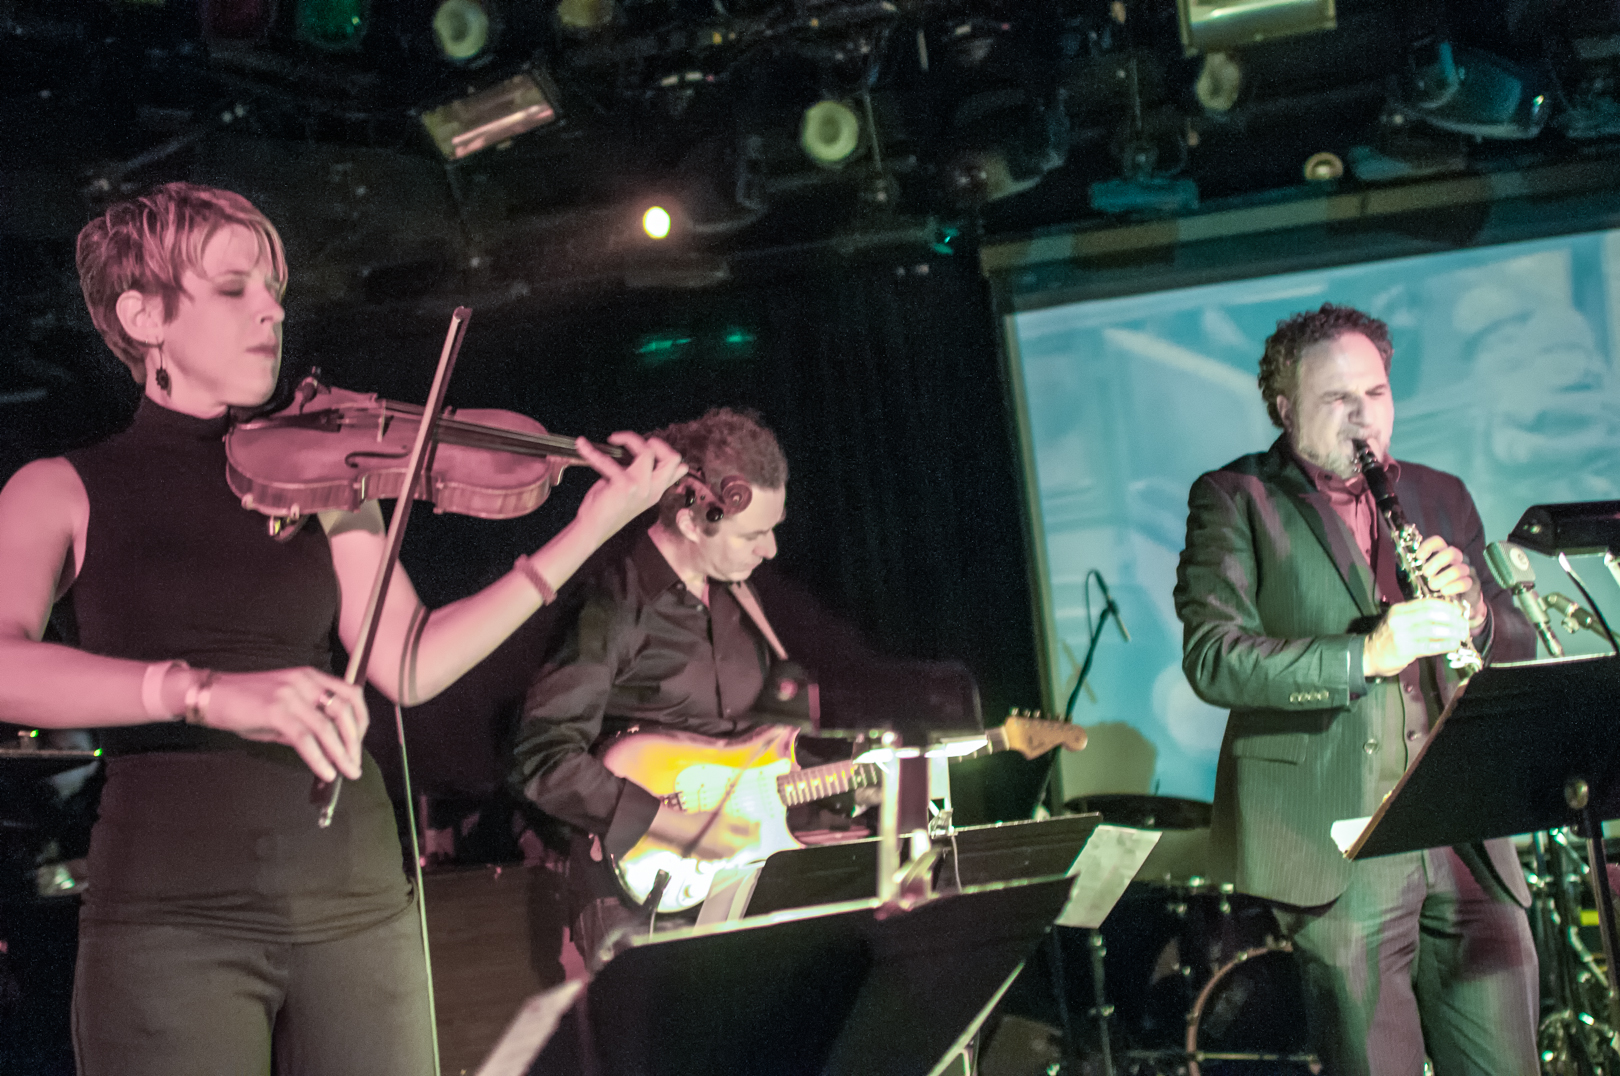 Sara Caswell, Adam Rogers and David Krakauer and the Big Pictureat le Poisson Rouge at Winter Jazzfest 2013